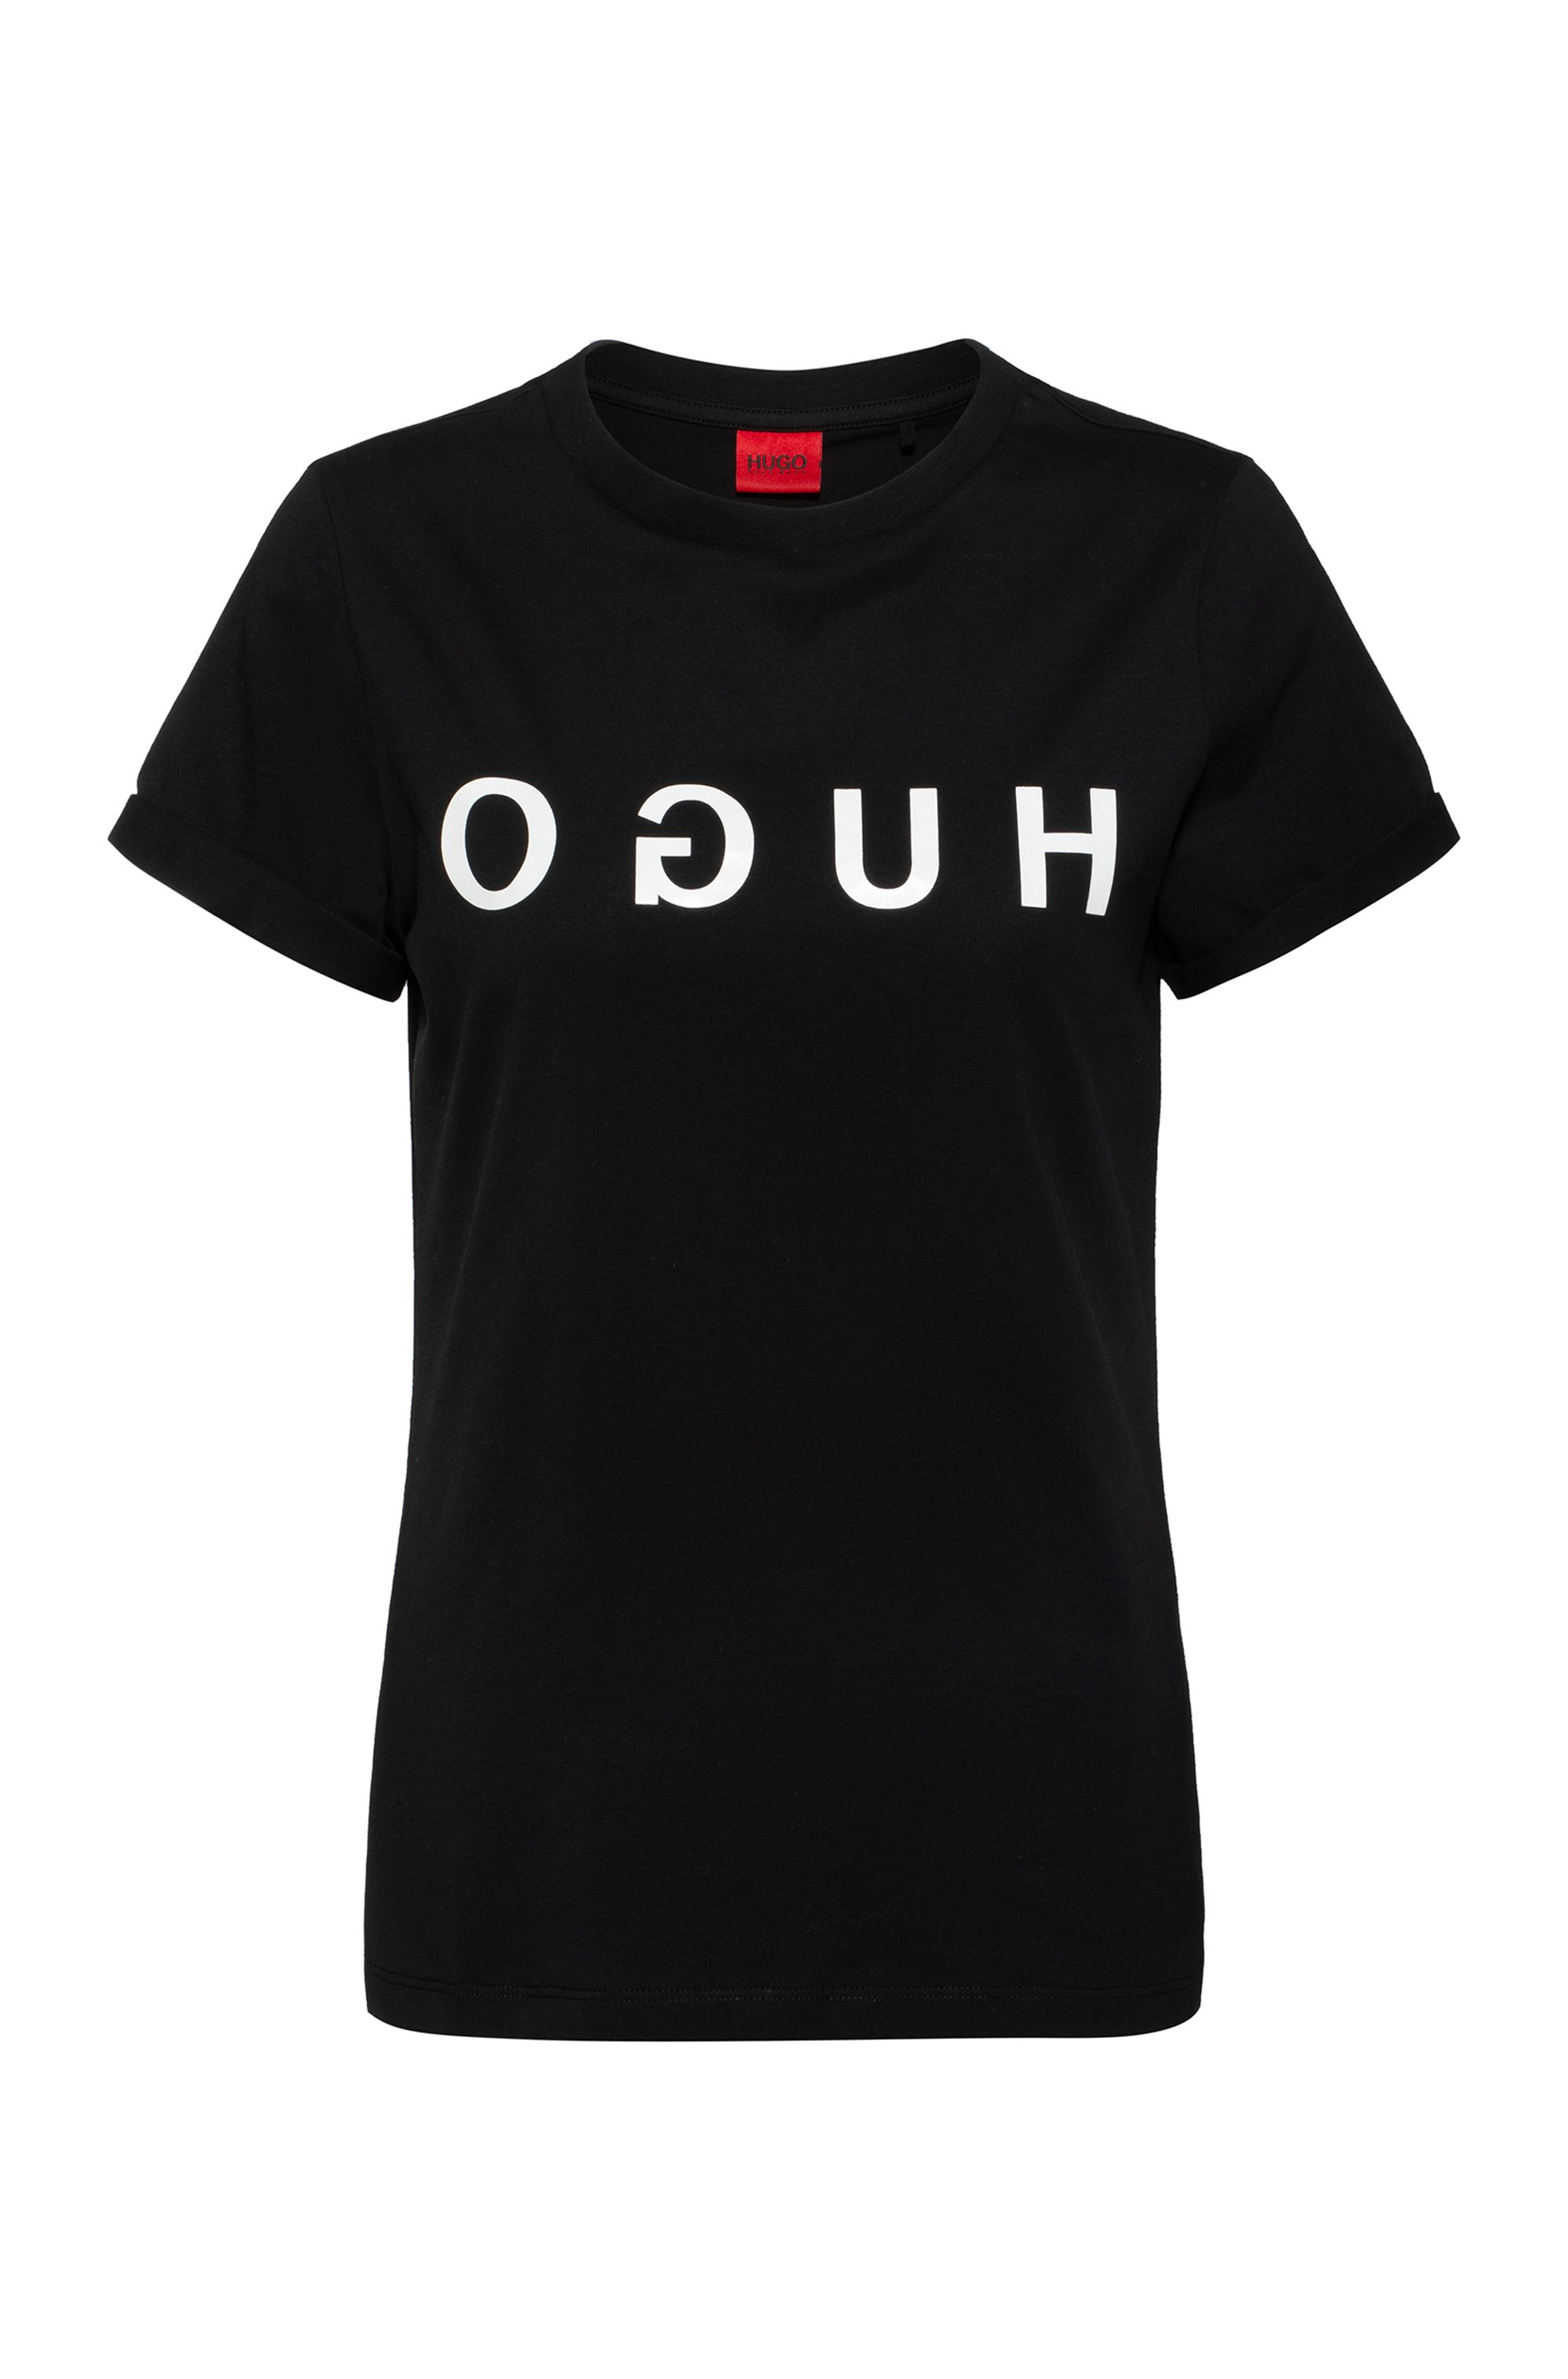 Cotton-jersey crew-neck T-shirt with reversed-logo print, Black